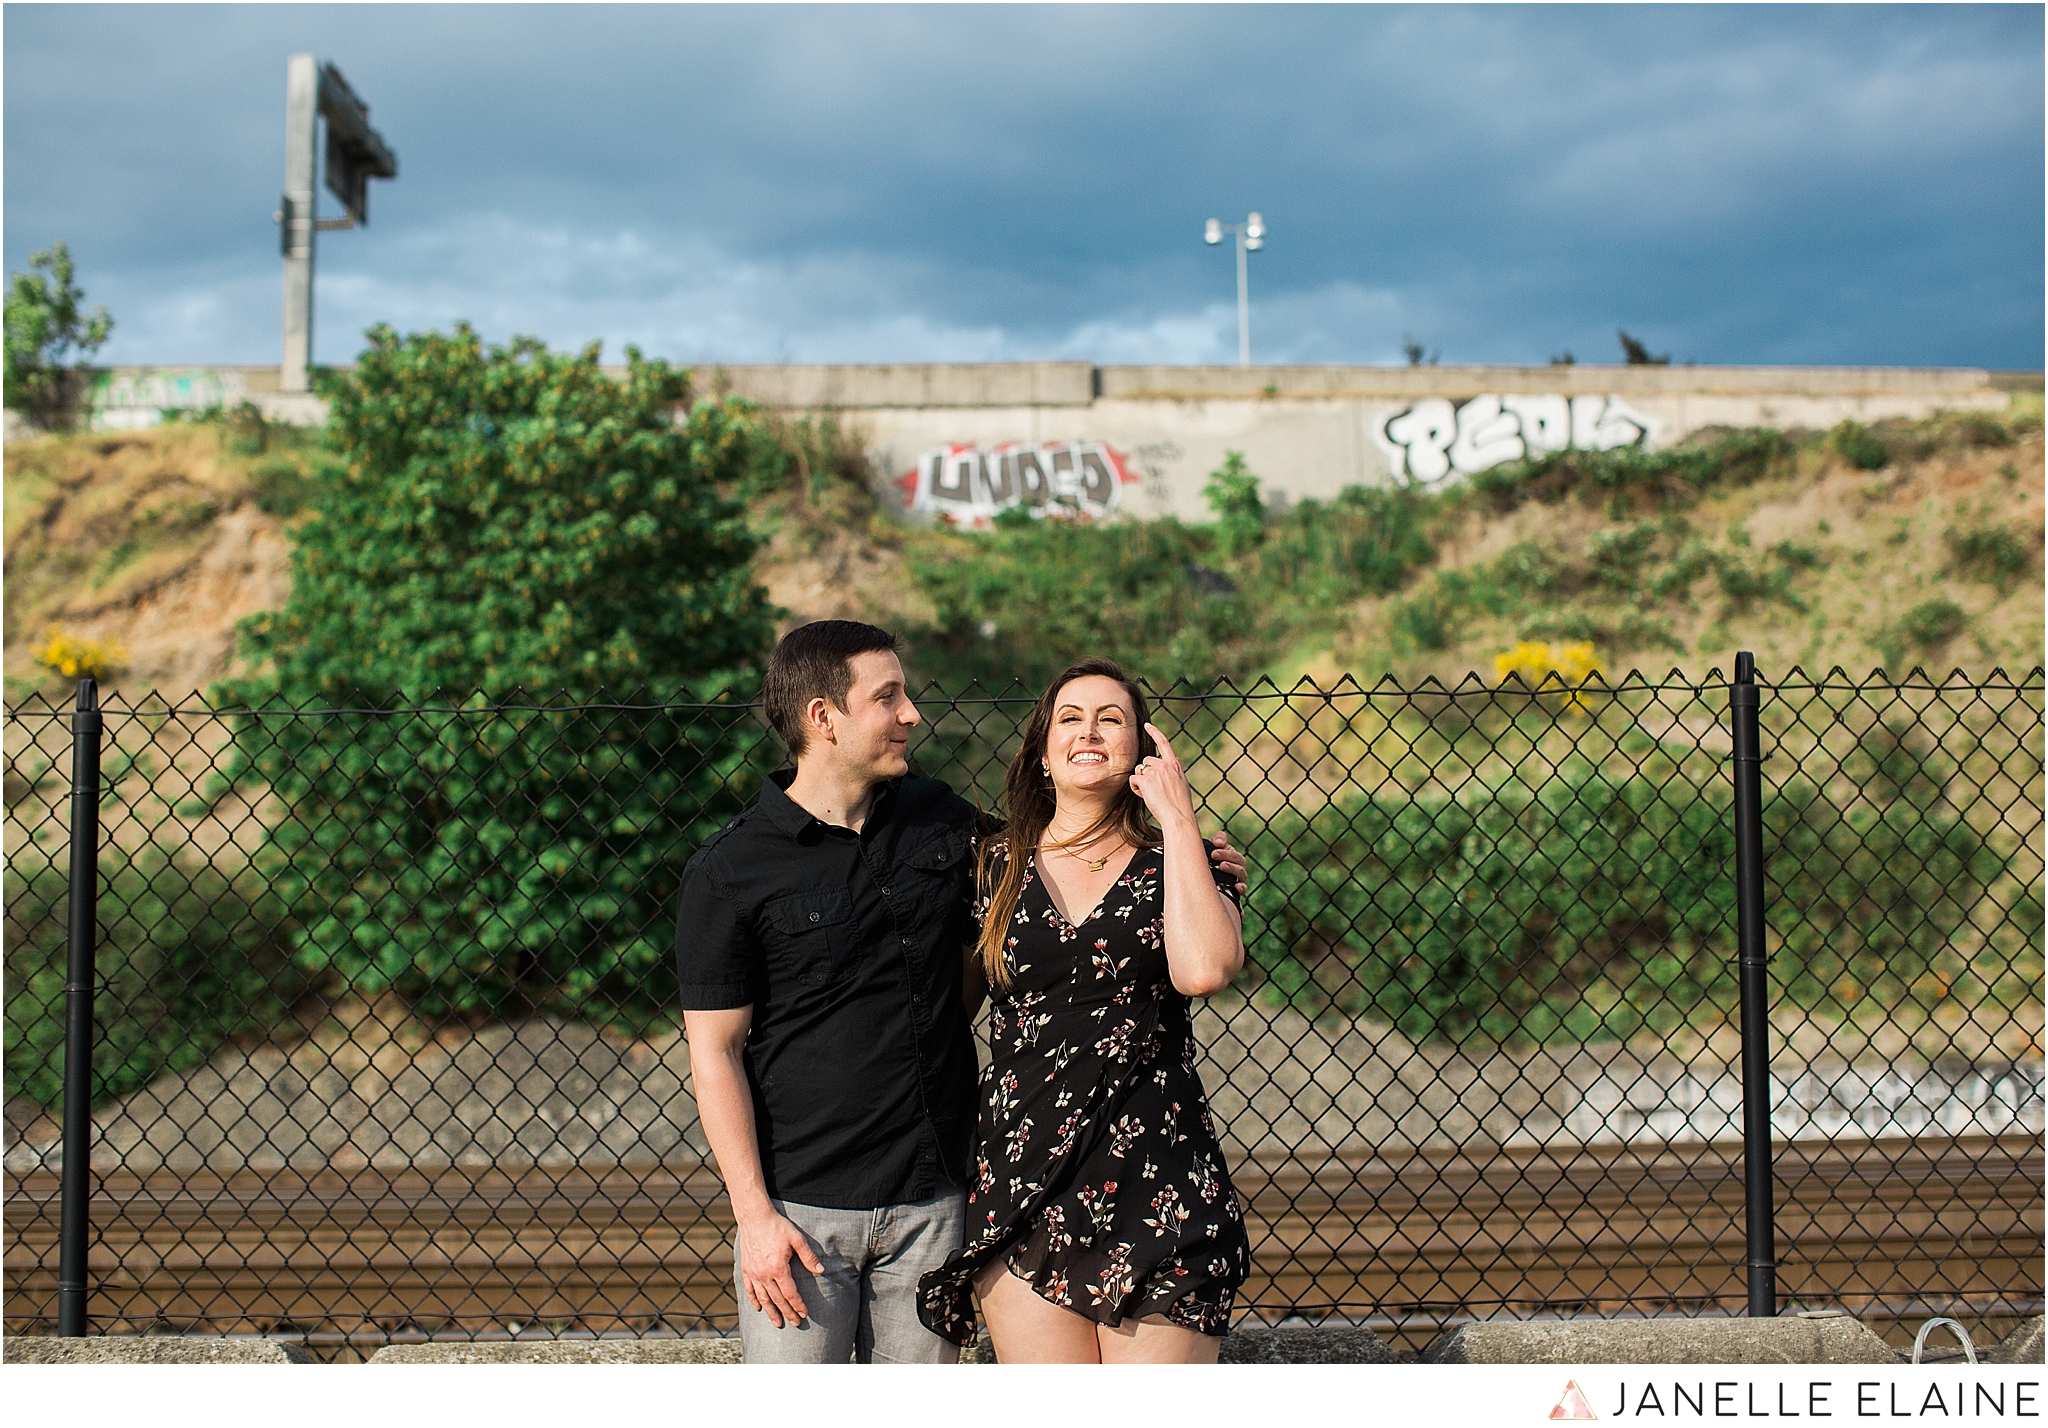 karen ethan-georgetown engagement photos-seattle-janelle elaine photography-115.jpg